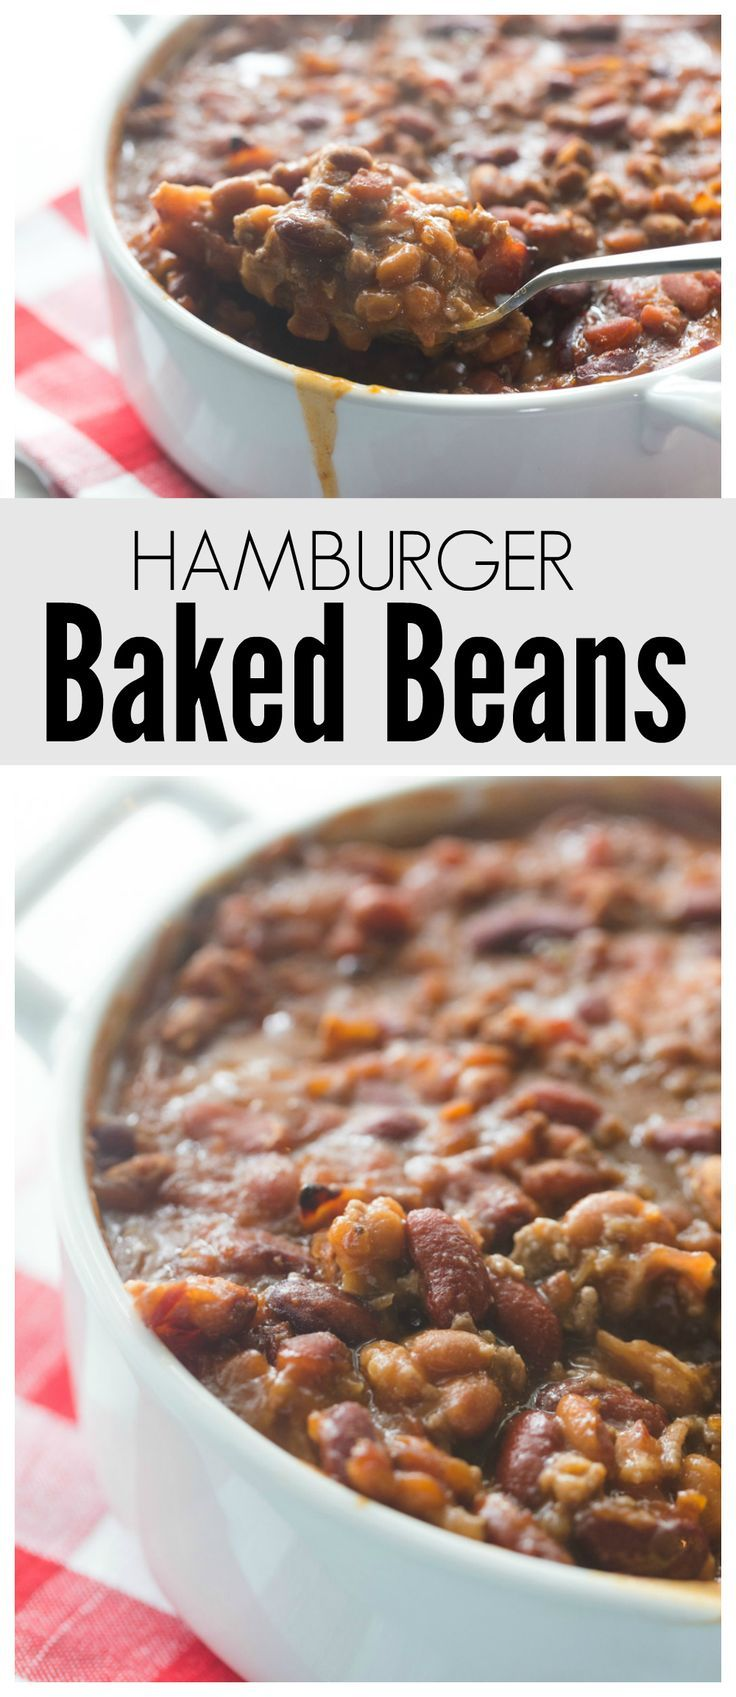 These Baked Beans are filled with flavor and the hamburger and bacon bites take them over-the-top good! Perfect for summer BBQ and potlucks!